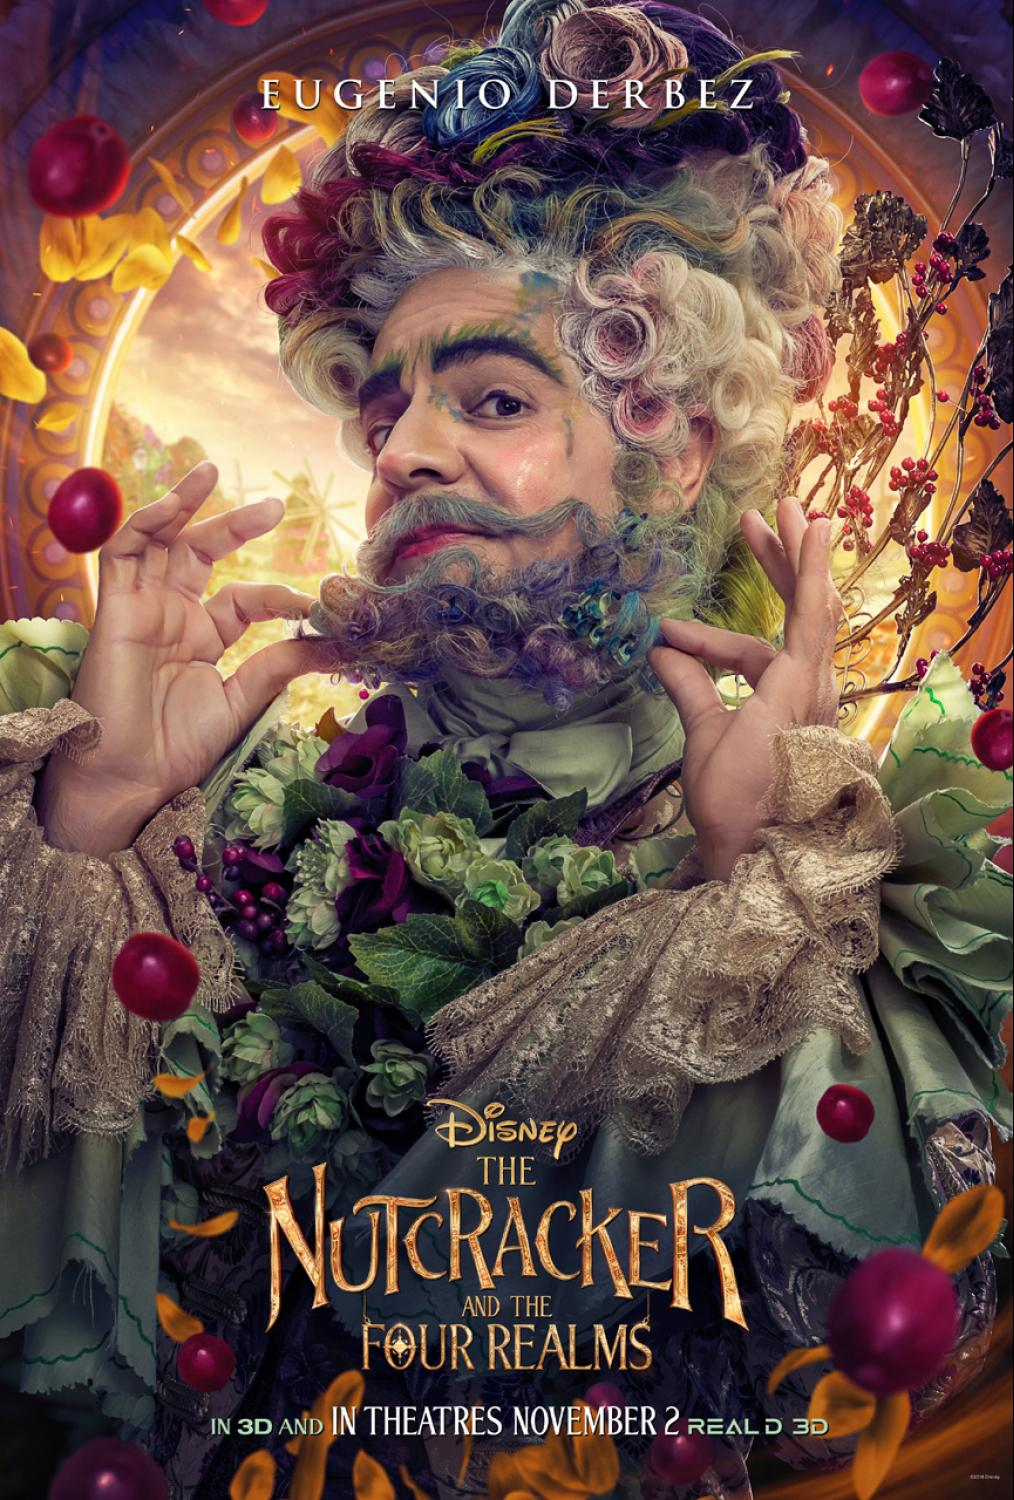 THE NUTCRACKER AND THE FOUR REALMS - Character Posters Now Available